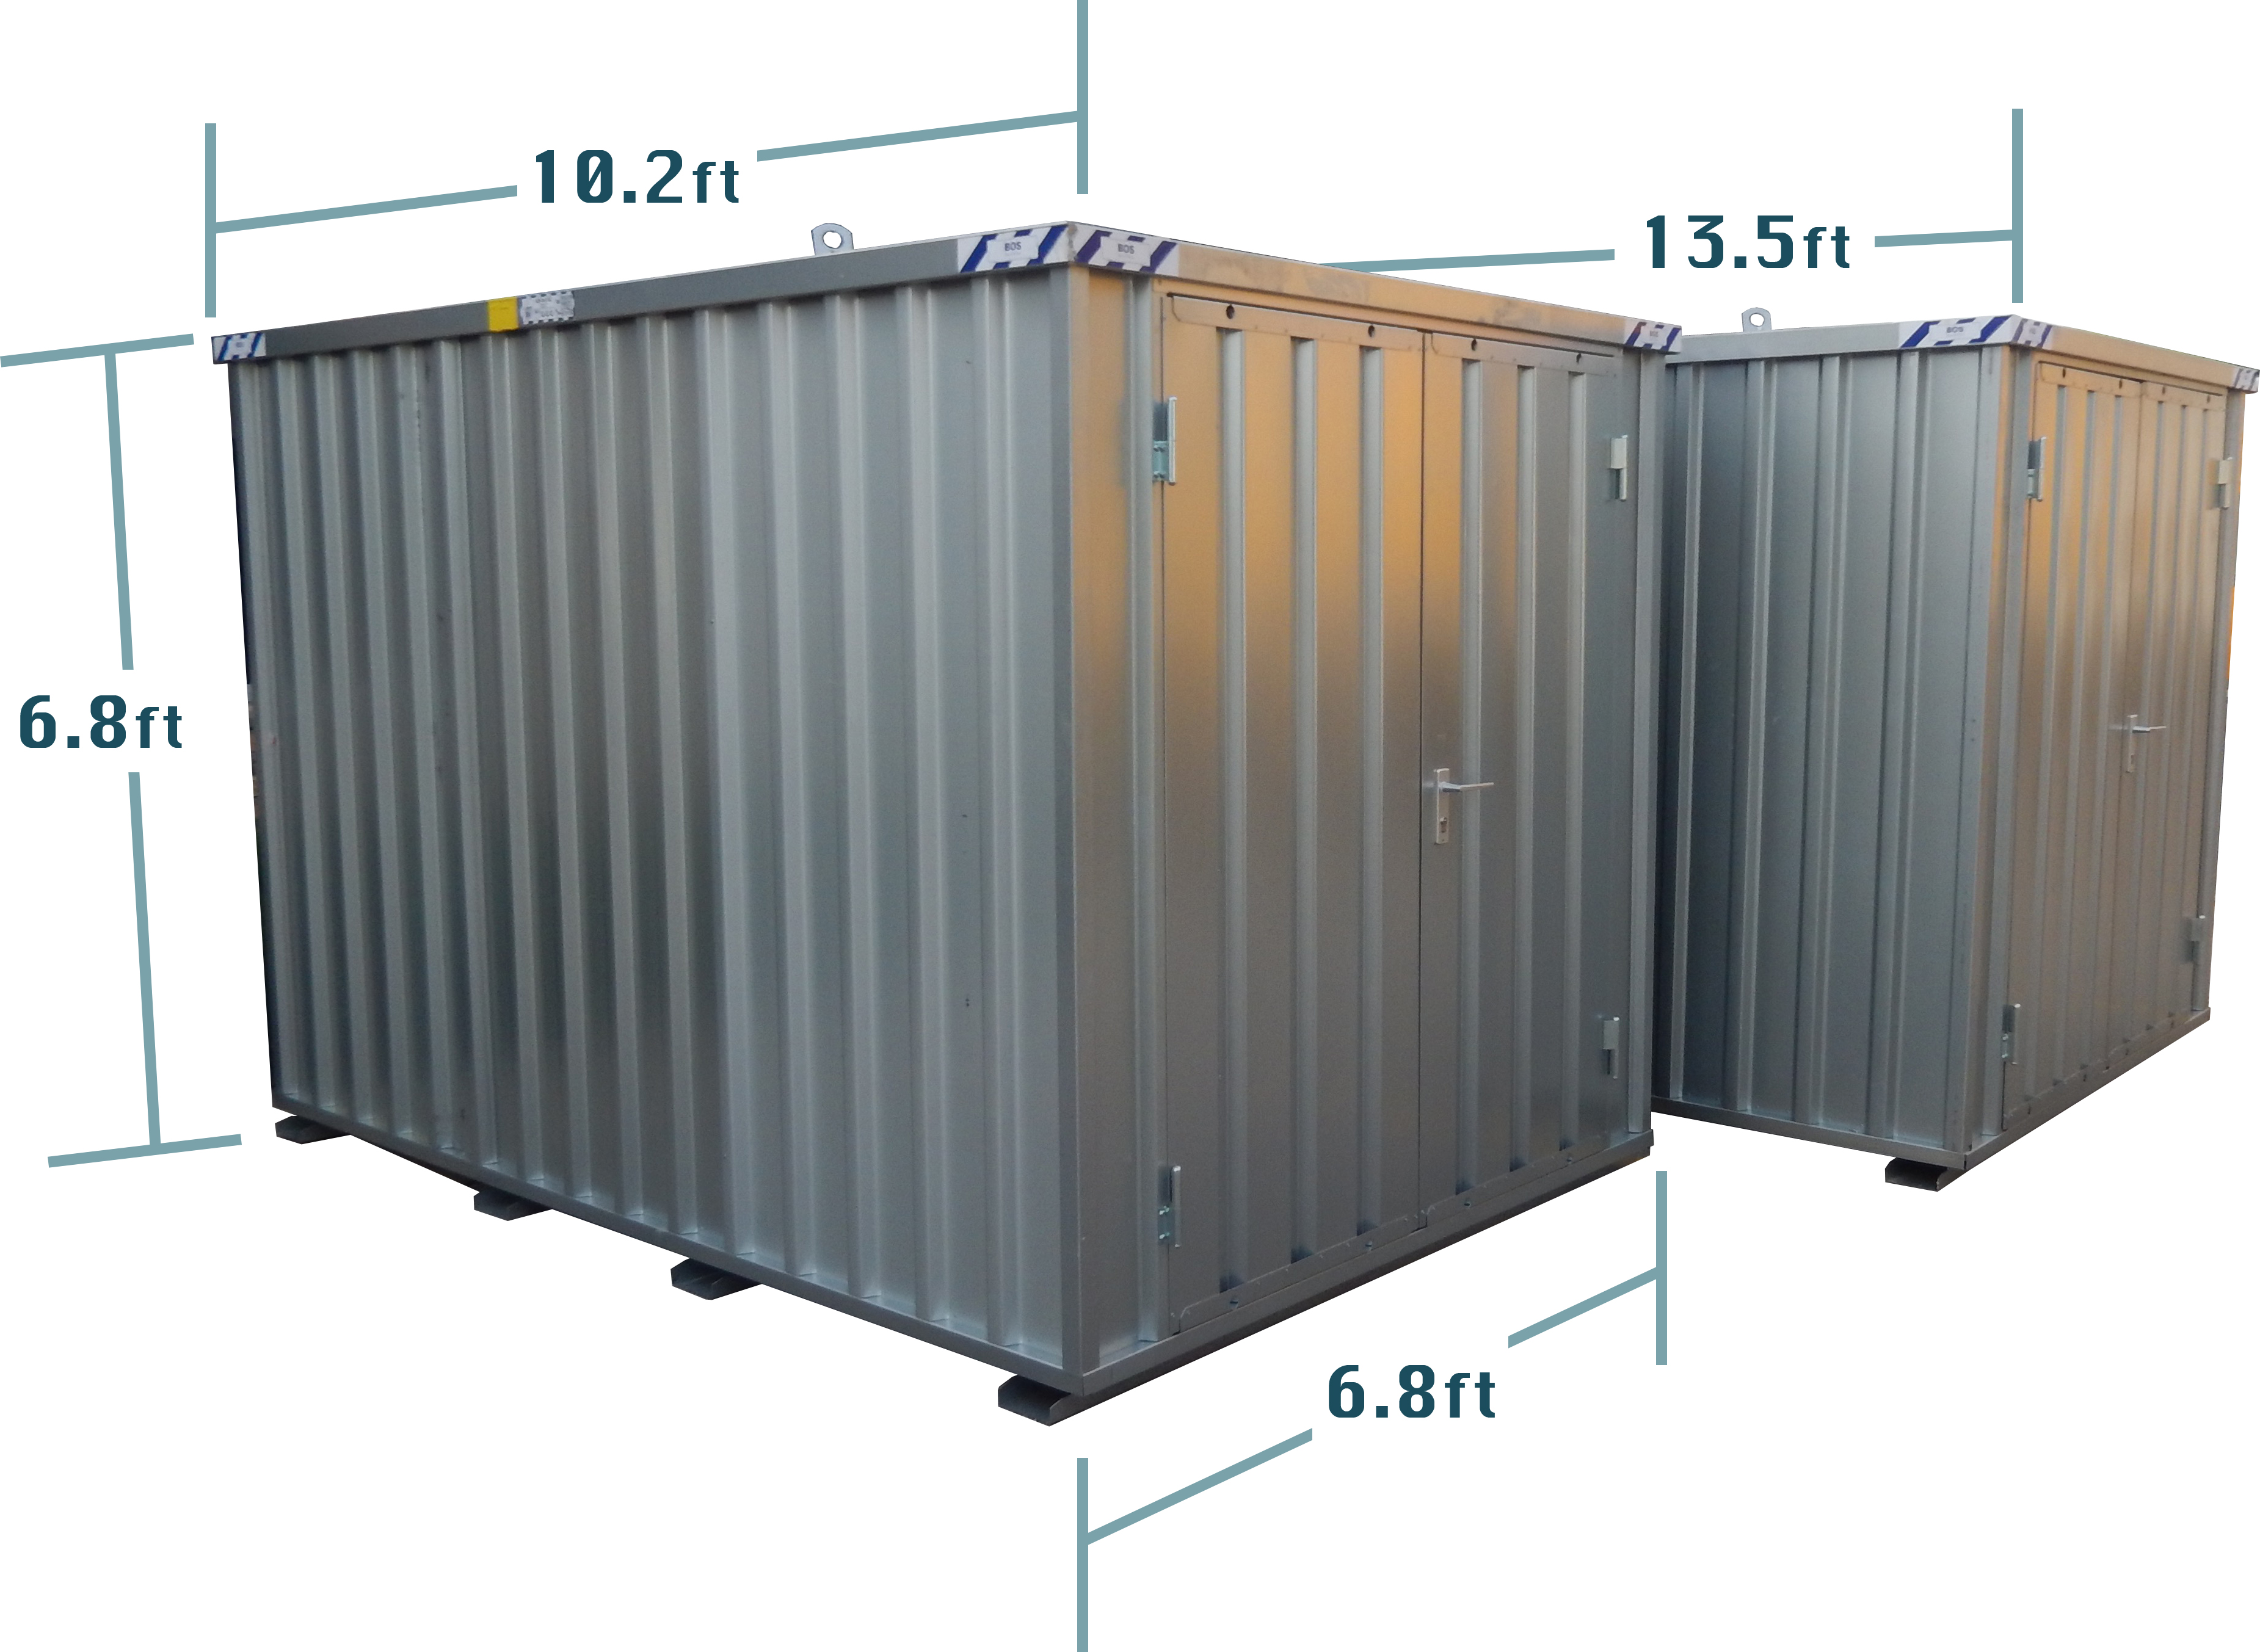 Best of Steel: Storage Building Container Kit